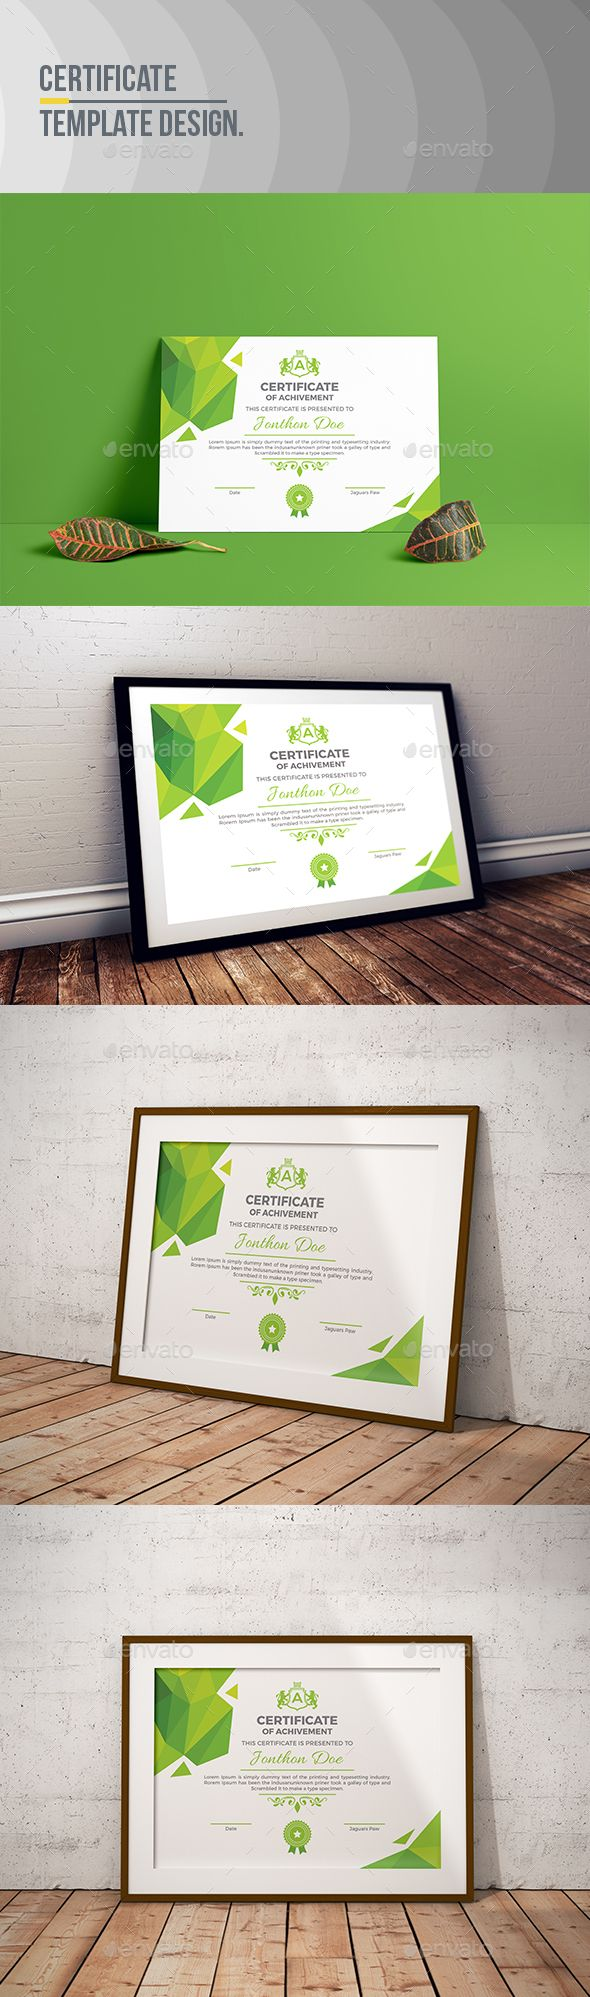 32 best Thank you certificates images on Pinterest | Certificate ...